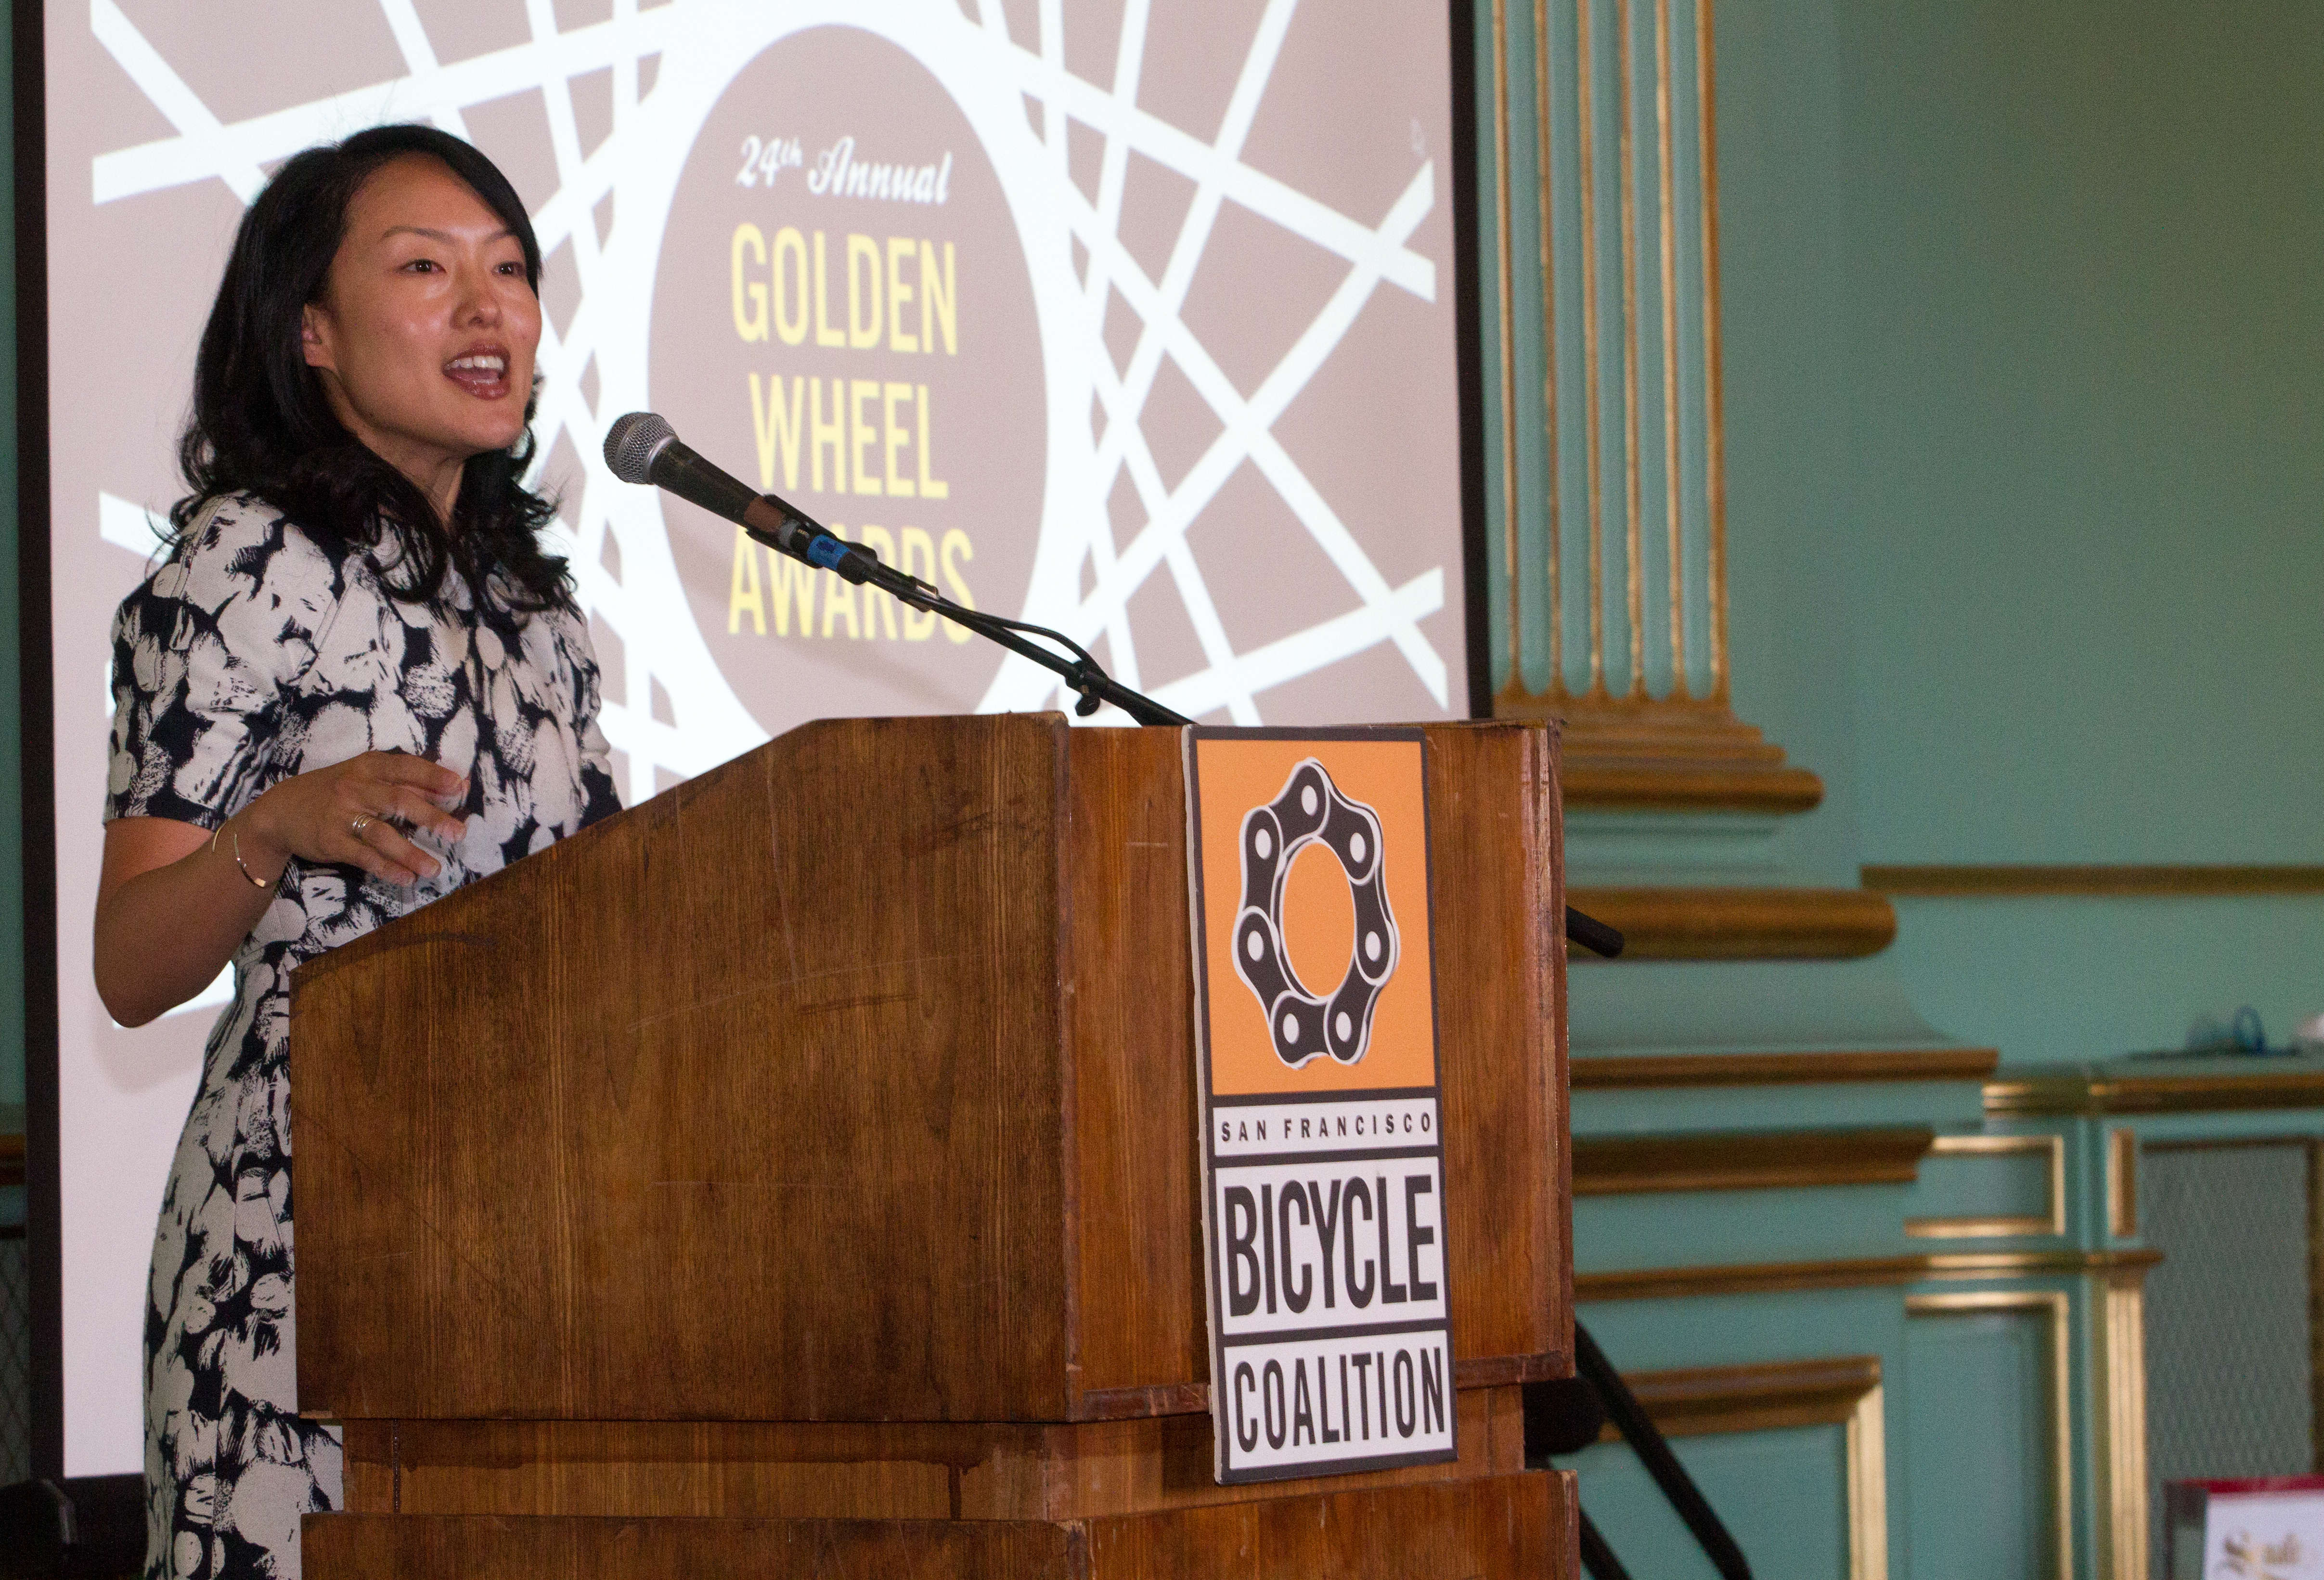 Jane Kim addressing the audience at the Golden Wheel awards. Photo: SFBC.